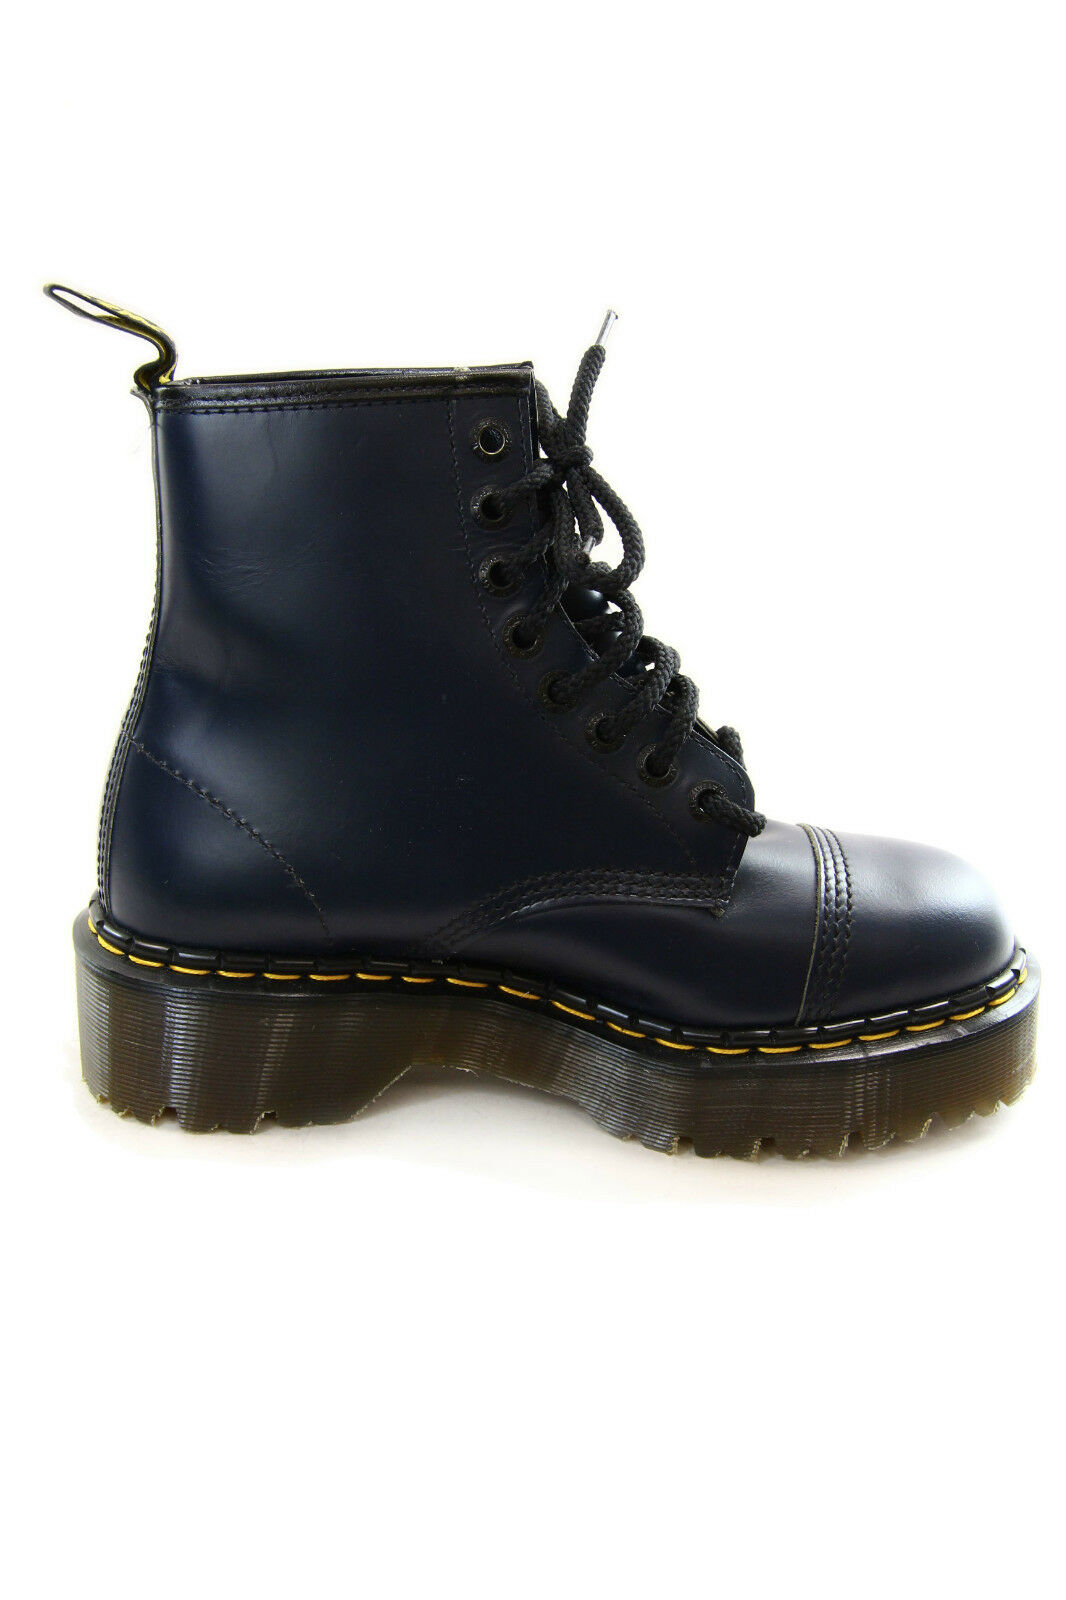 Dr. Smooth Martens Vintage Boots Navy Smooth Dr. 8 Logo Eyelet 100% Made in England 7cc73e